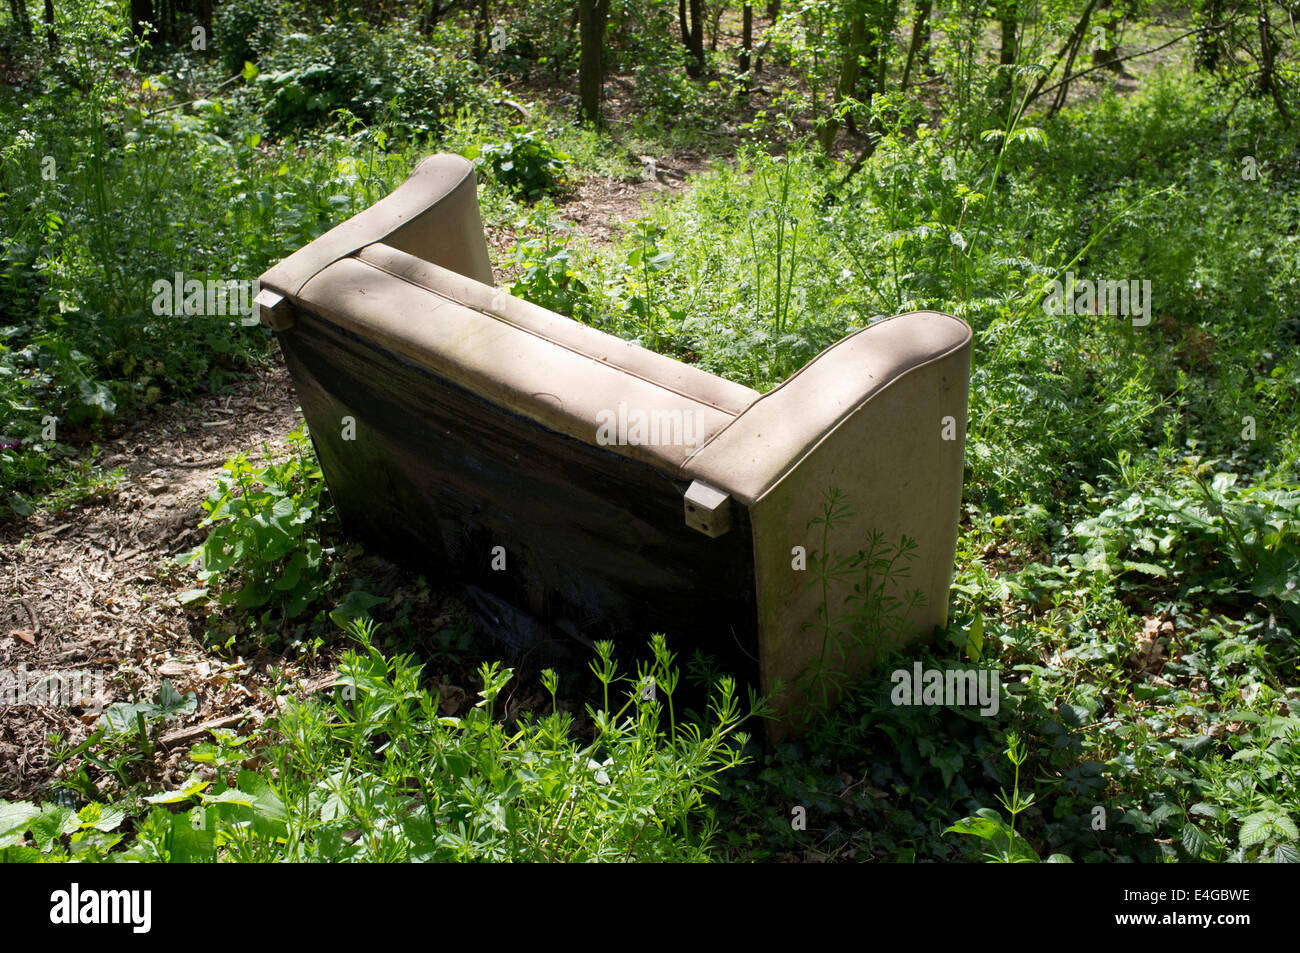 Abandoned settee in woods - Stock Image